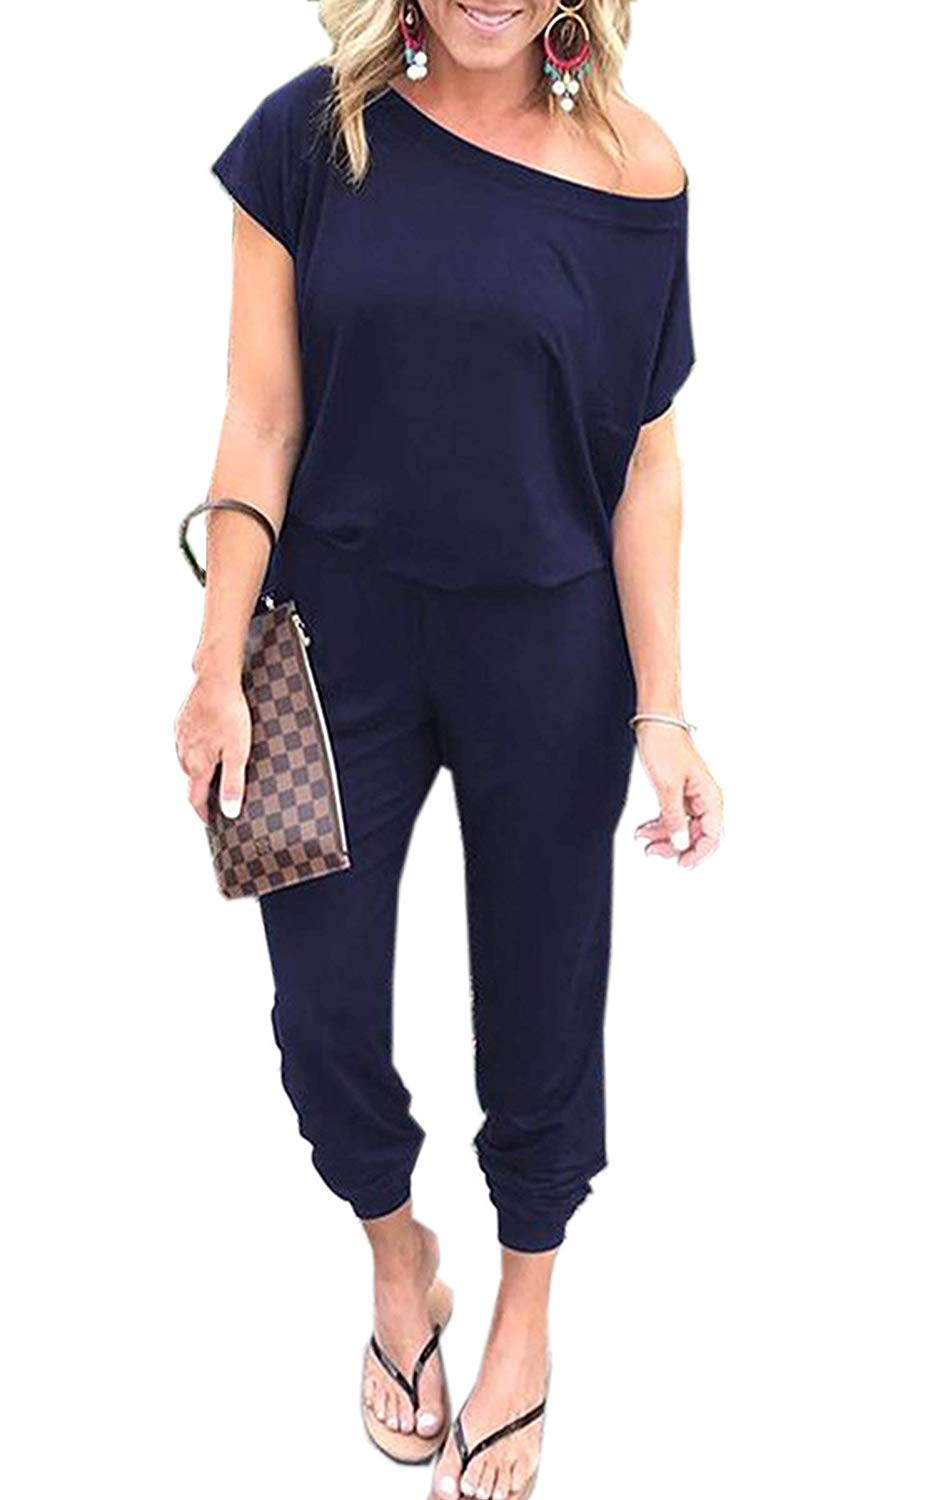 Pant Suits for Women - Cute One Off Shoulder Jumpsuits with Pockets X-Large Navy Blue